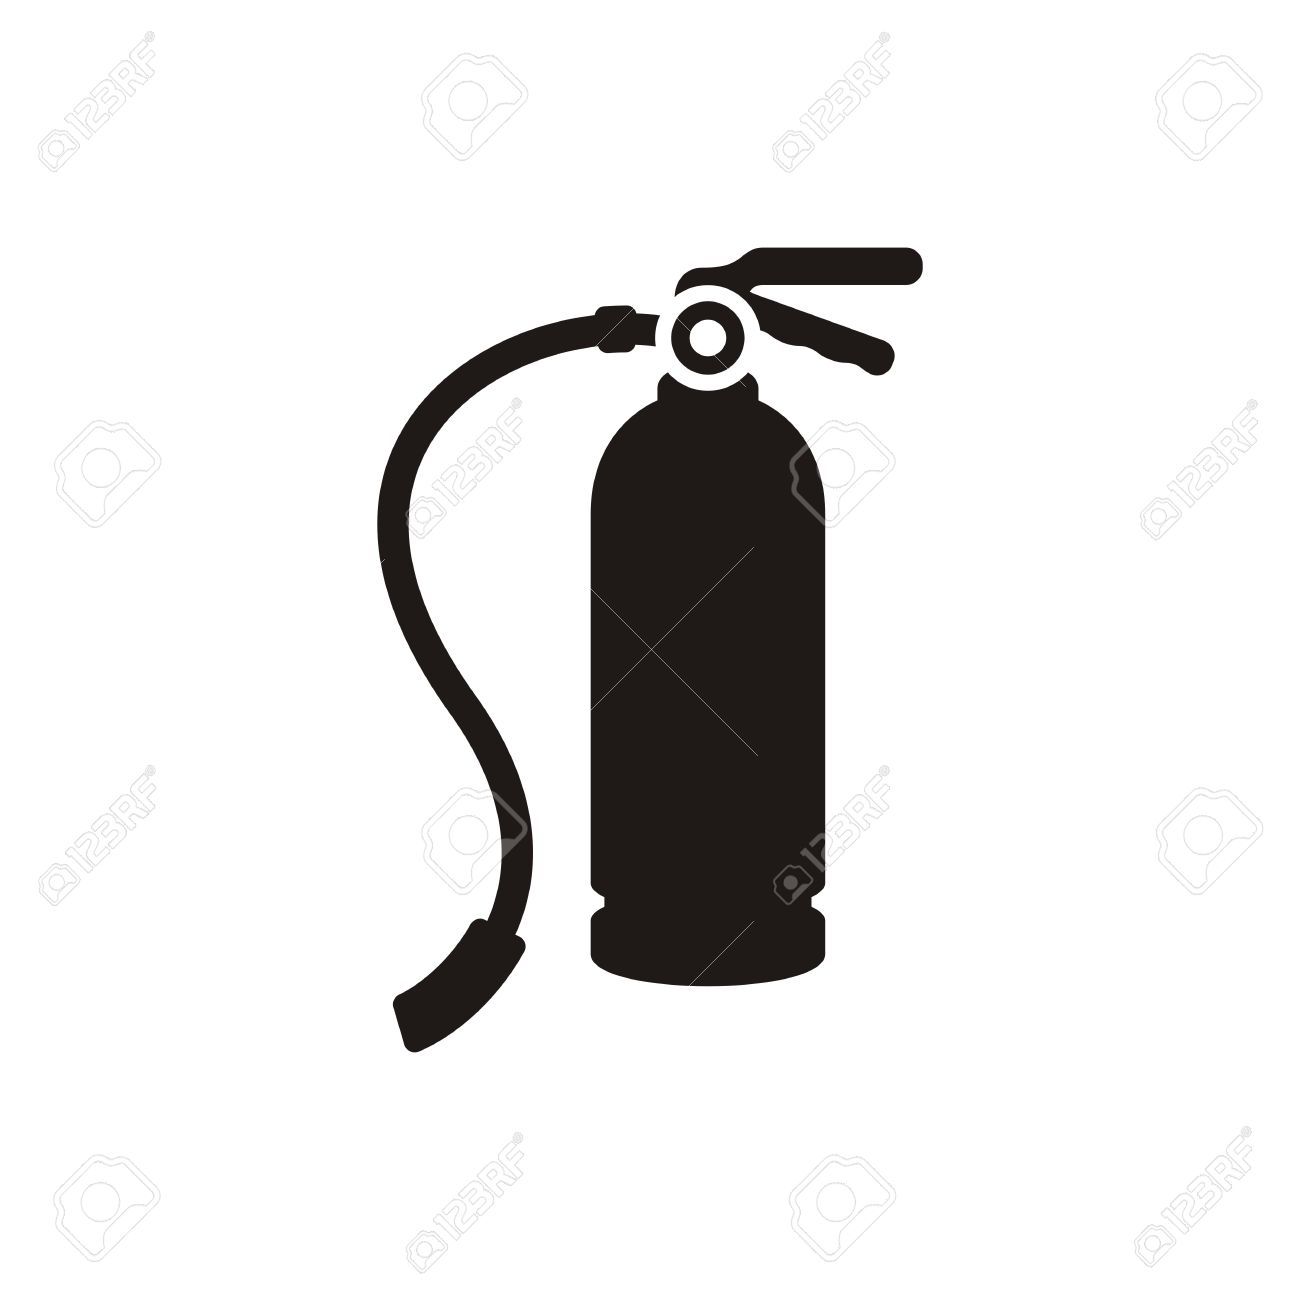 Simple black fire extinguisher icon isolated